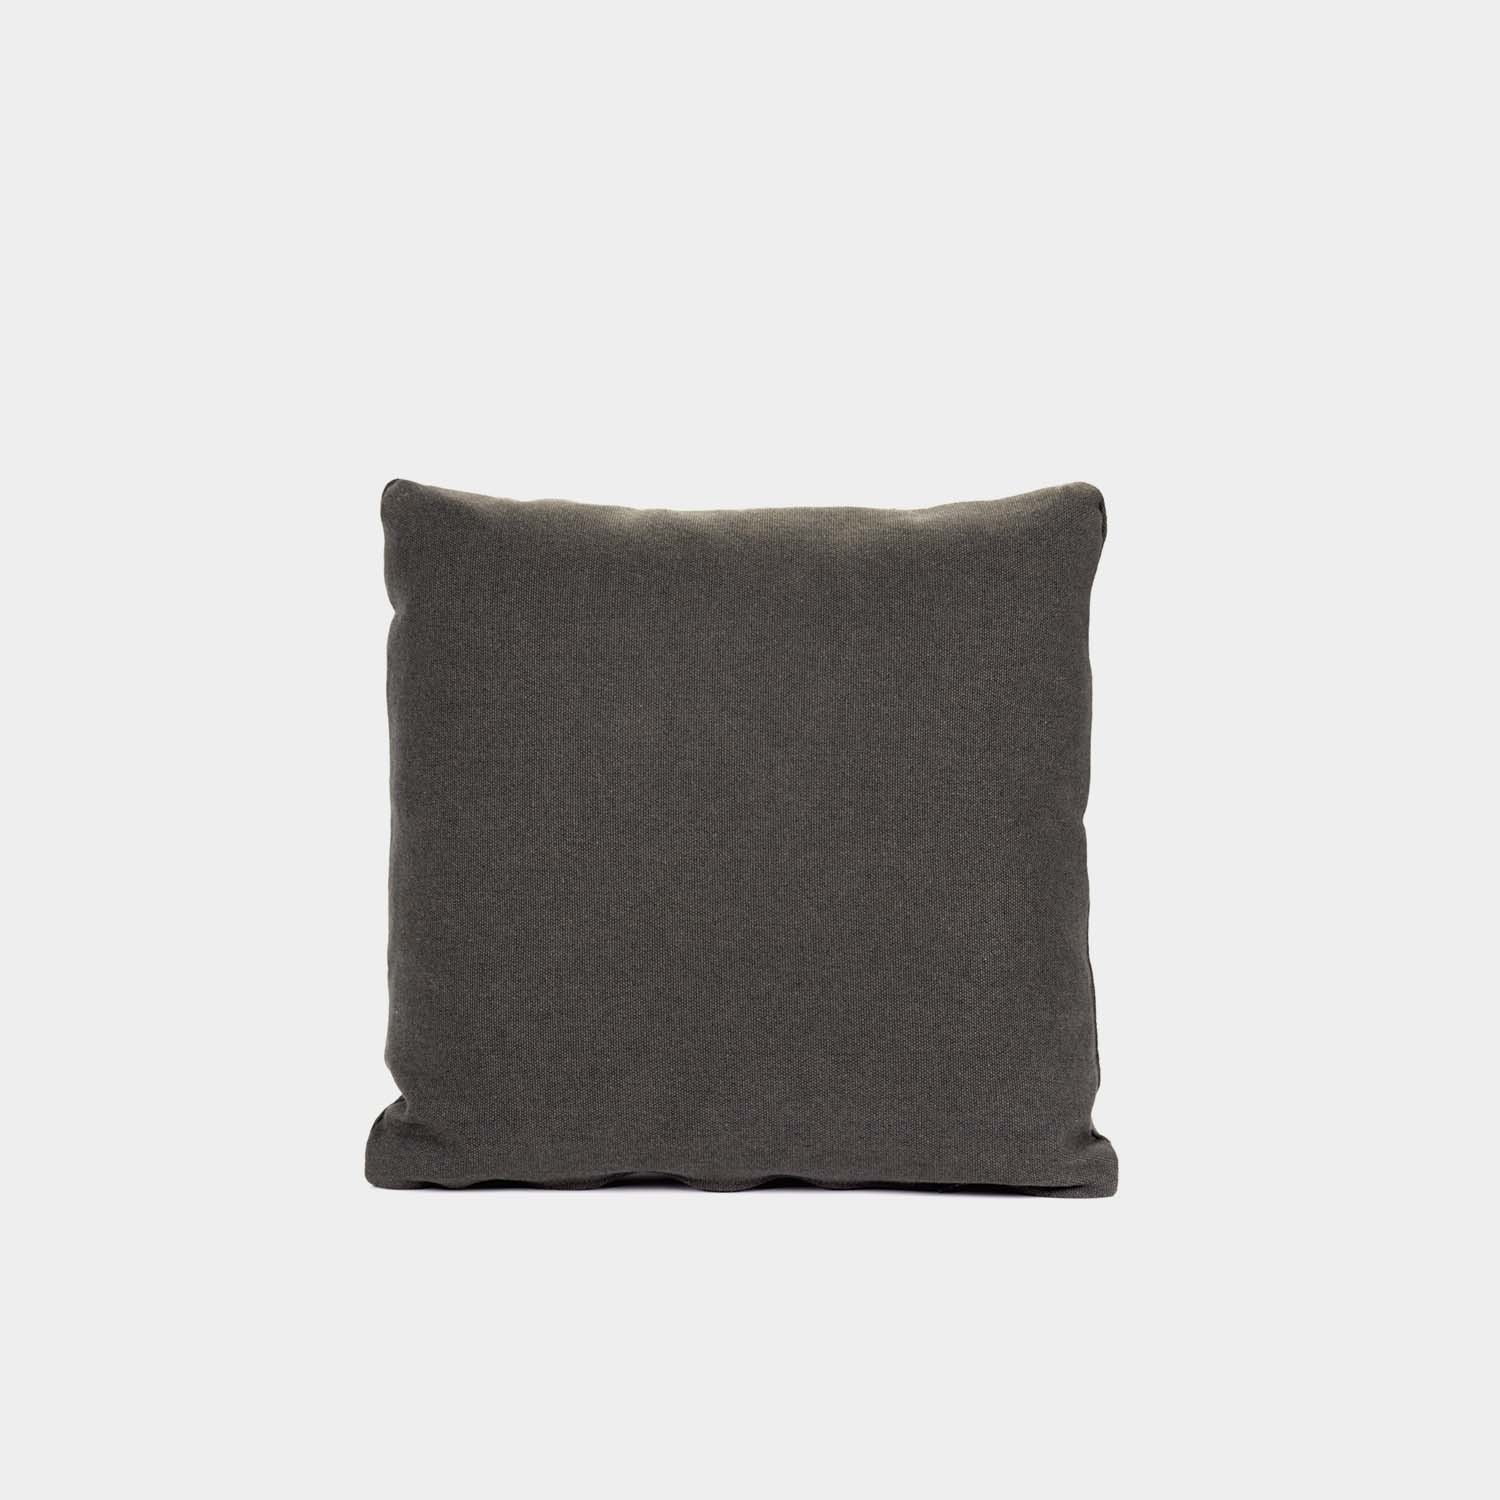 Decorative Cushion, Square, Black Brown Cotton